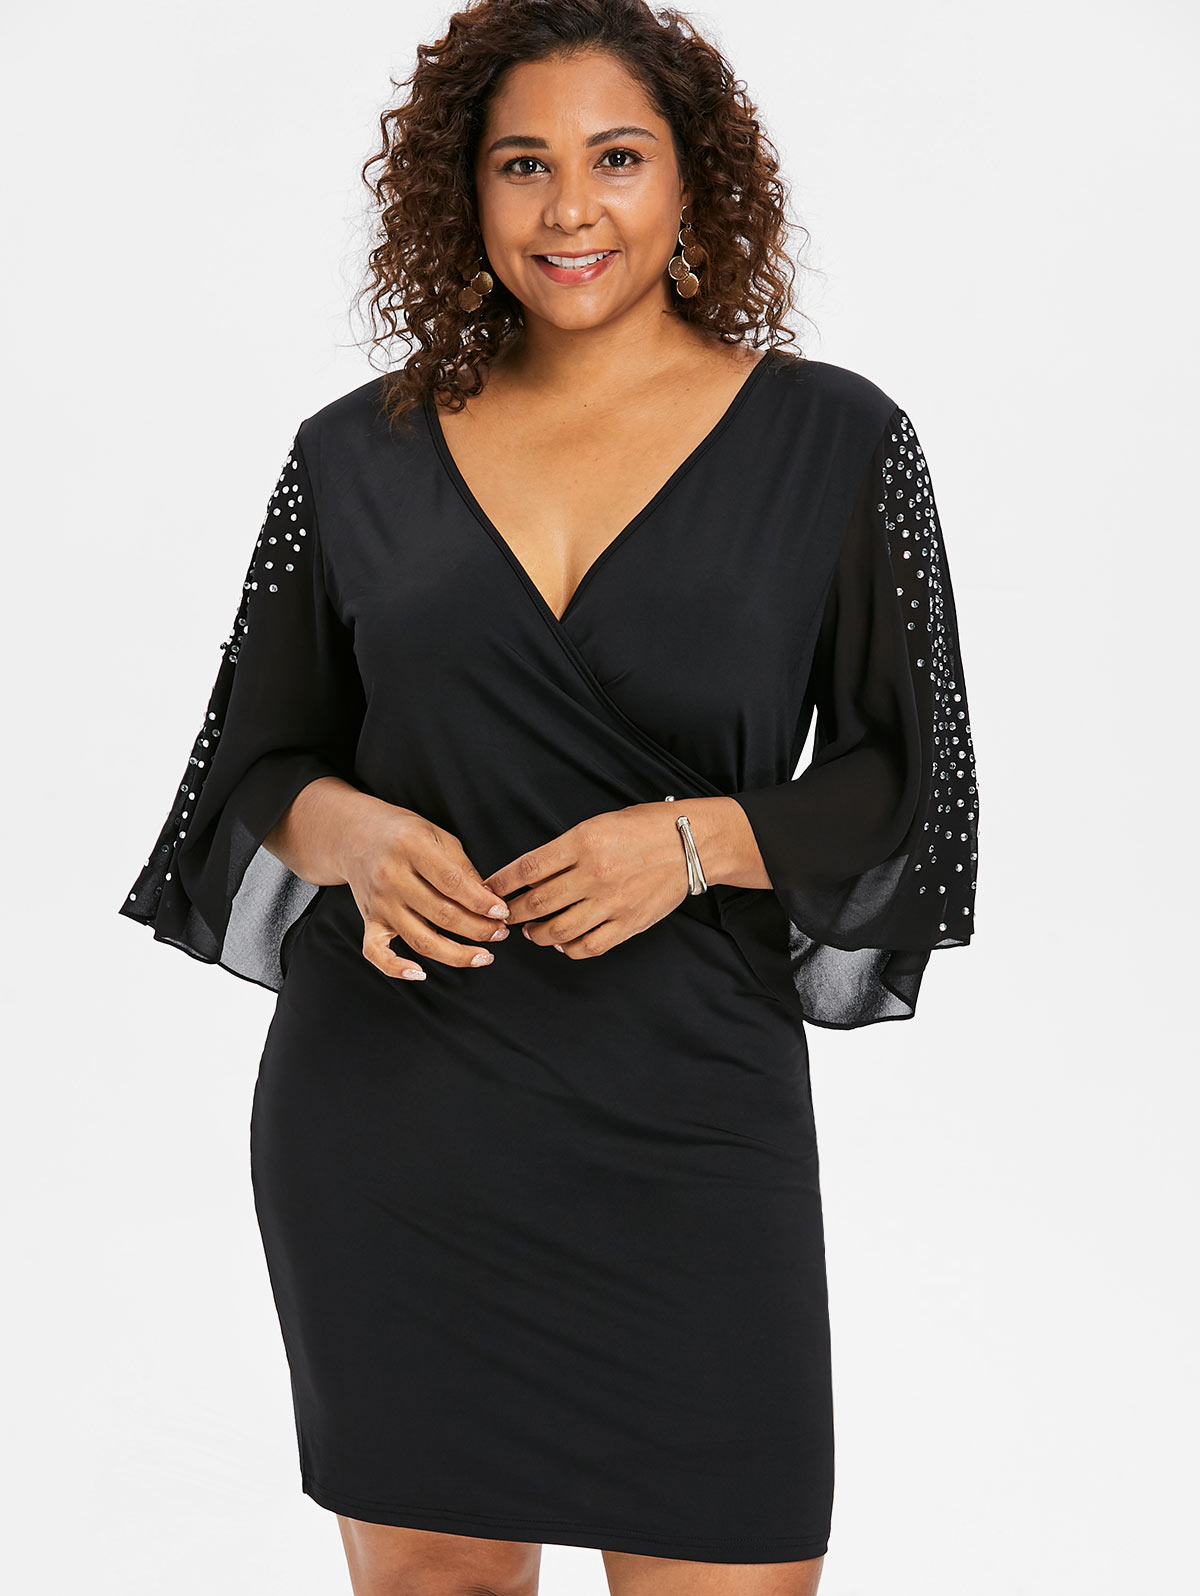 Detail Feedback Questions about Wipalo Plus Size 5XL Flare Sleeve ... 1f8625194df3